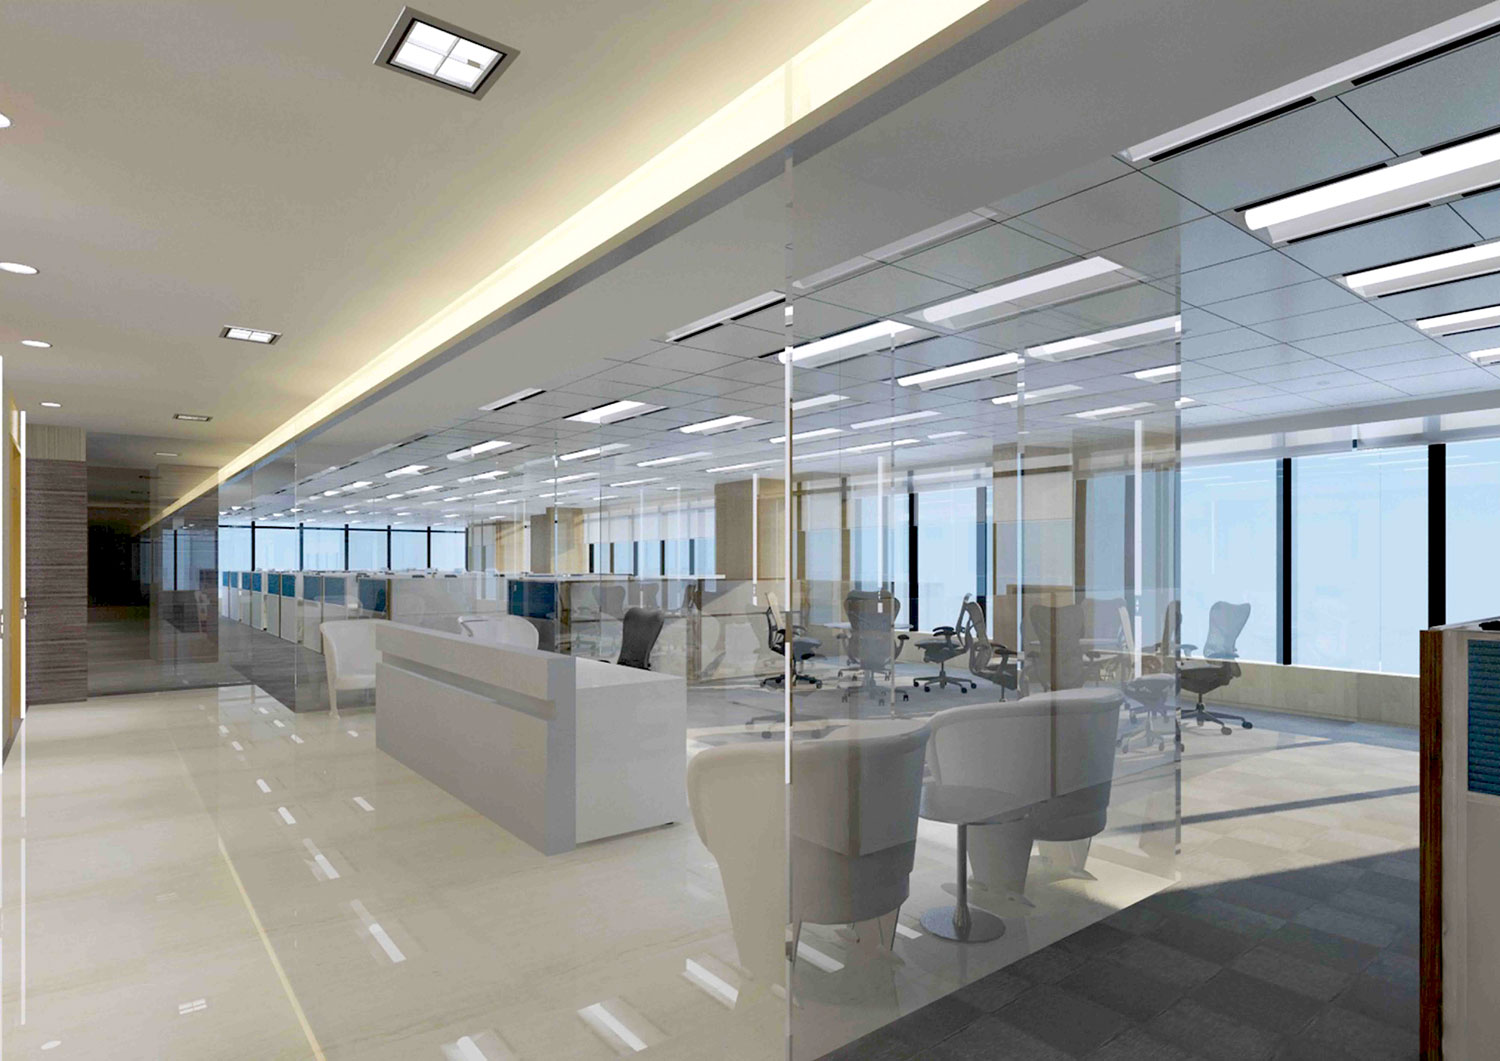 Fat sumo hong kong office building interior cgi for Building interior decoration